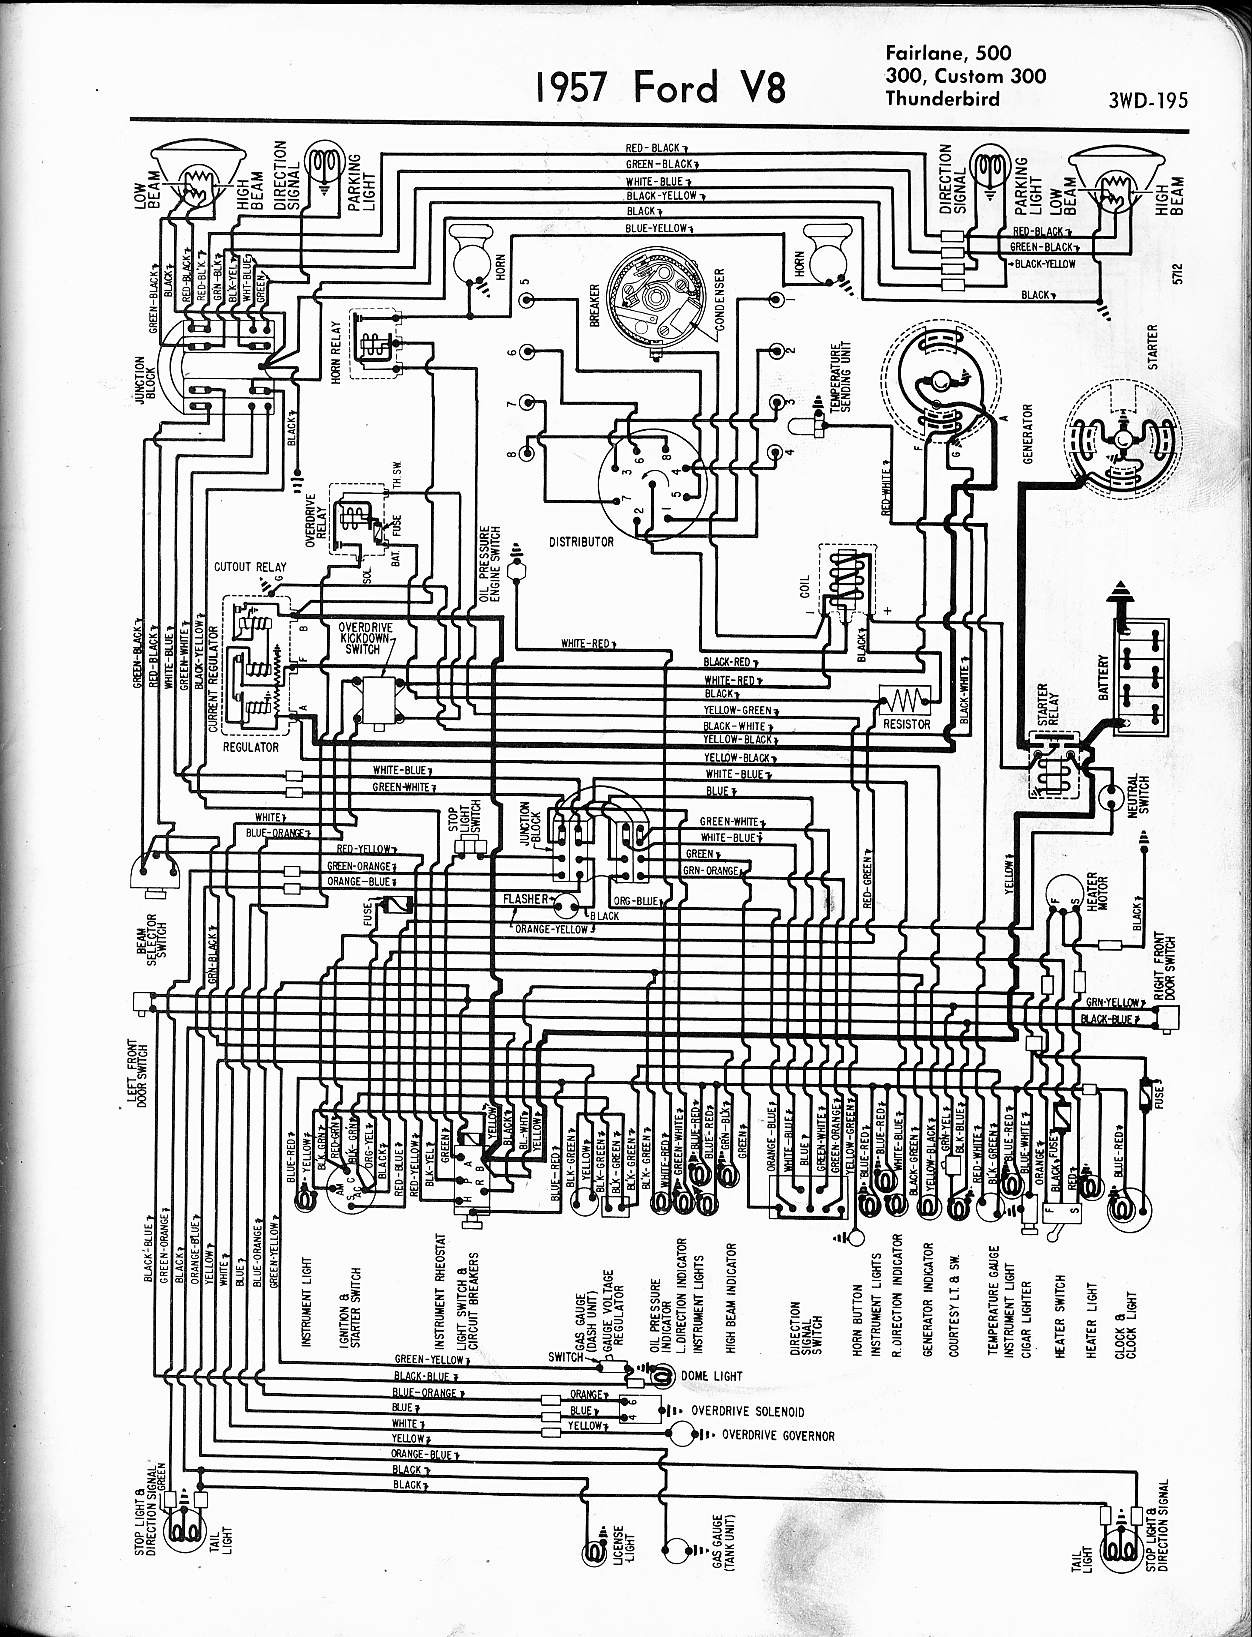 1957 Ford Thunderbird Wiring Diagram Msd Ignition - Auto Electrical ...